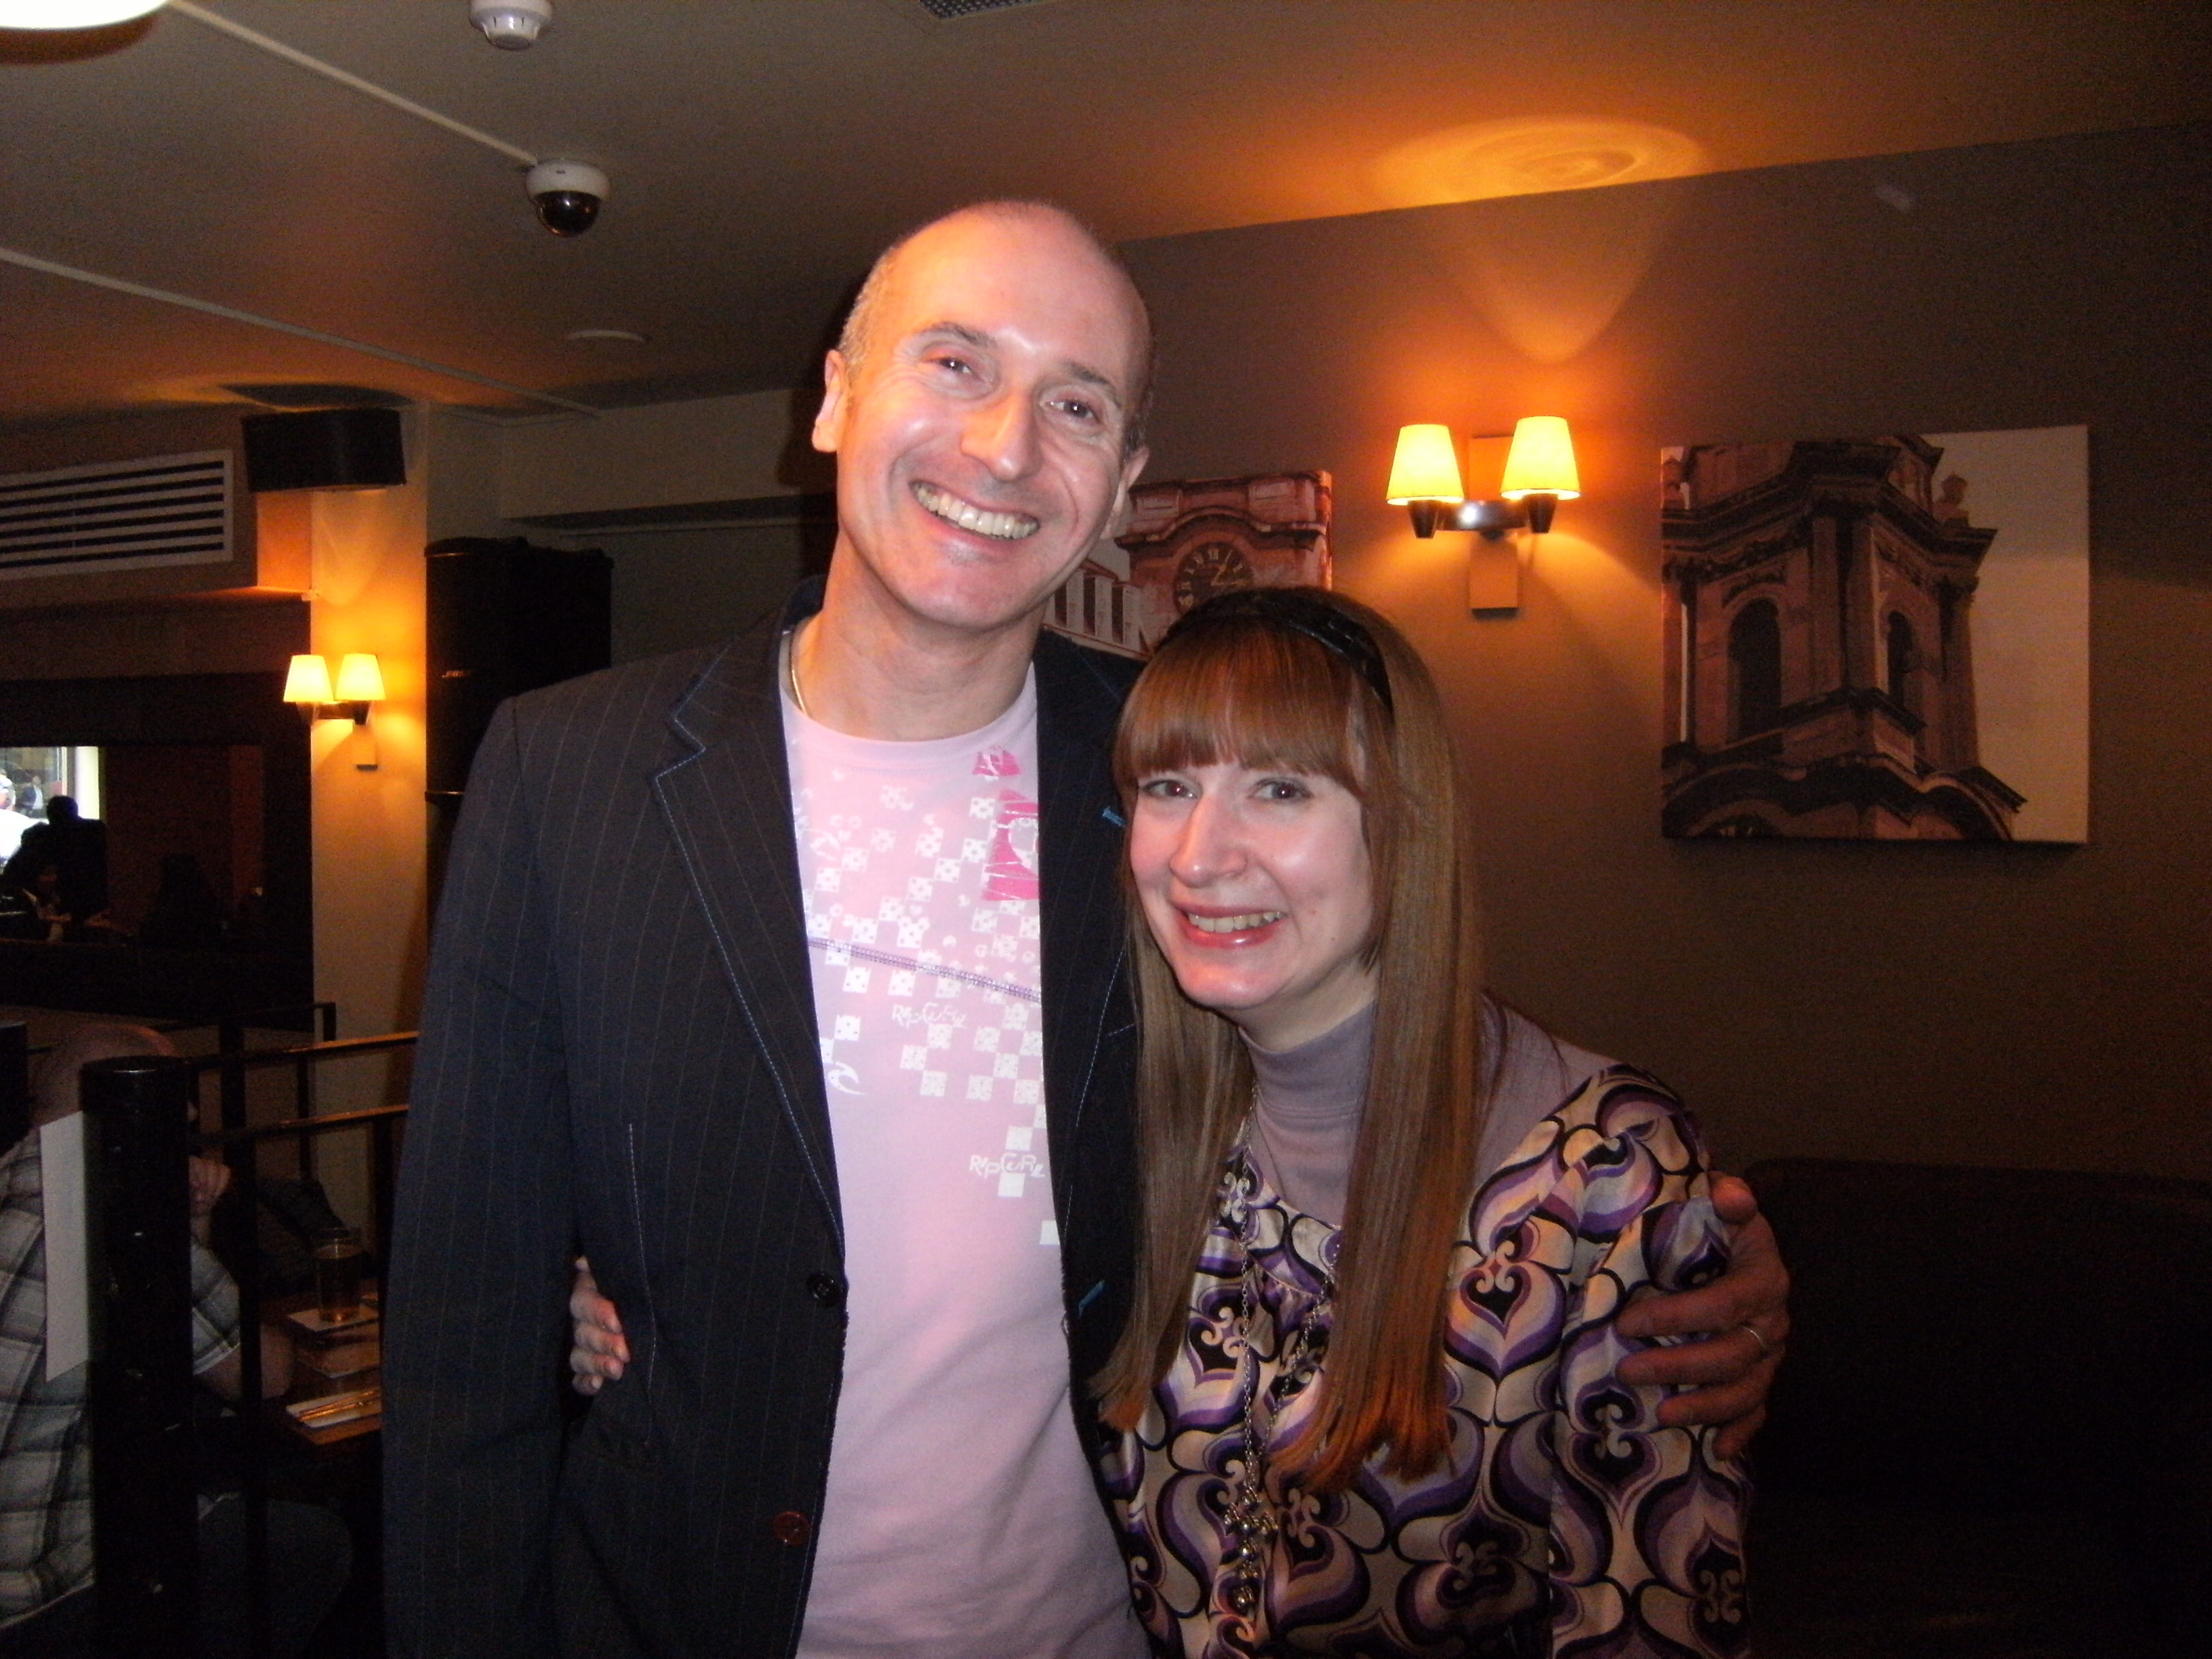 Bill Buckley with Sharon Ann at the 2010 launch event for Understanding Solid State Physics